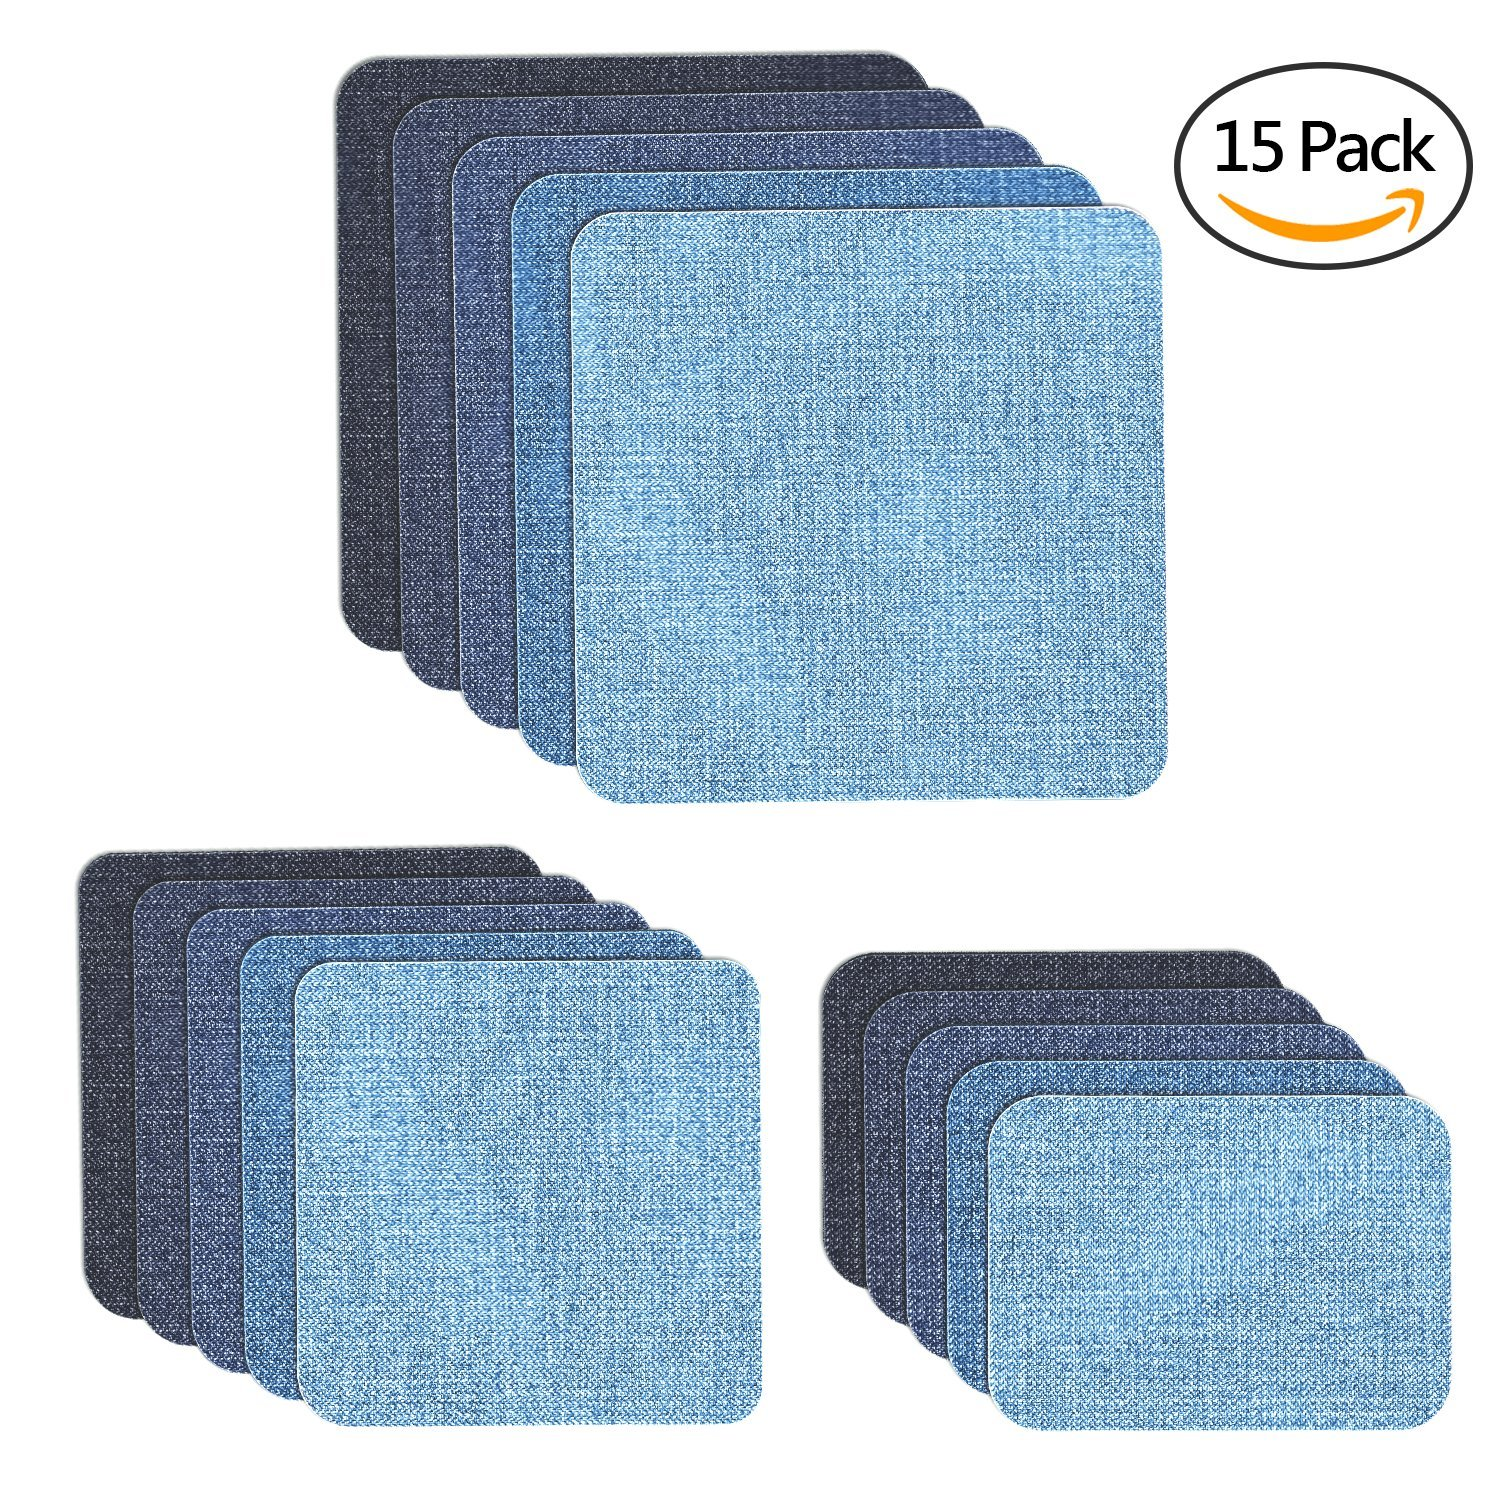 Iron on Denim Patches for Jeans, Muscccm 15 Pcs Sew On Patches For DIY Clothing Jeans Jackets Bags Iron-on Repair Kit, 5 Colors